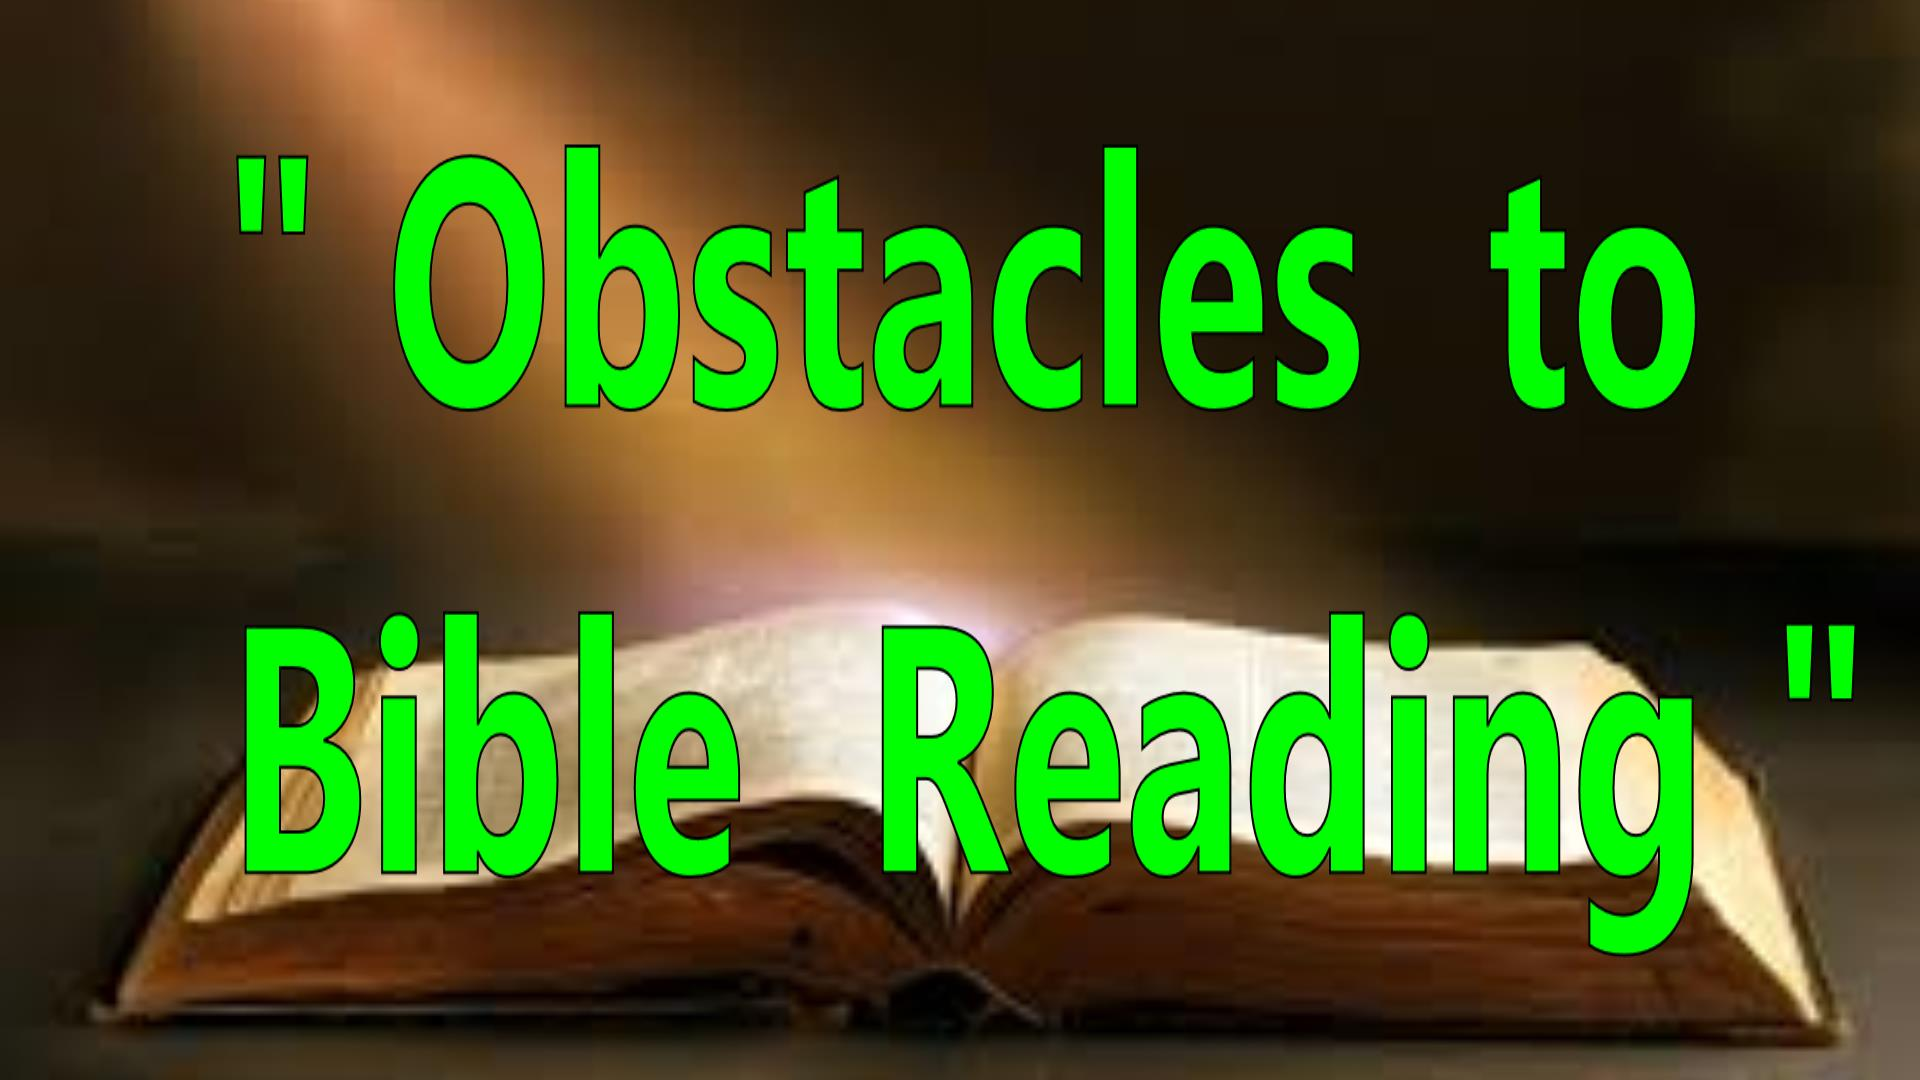 OBSTACLES OF READING THE BIBLE